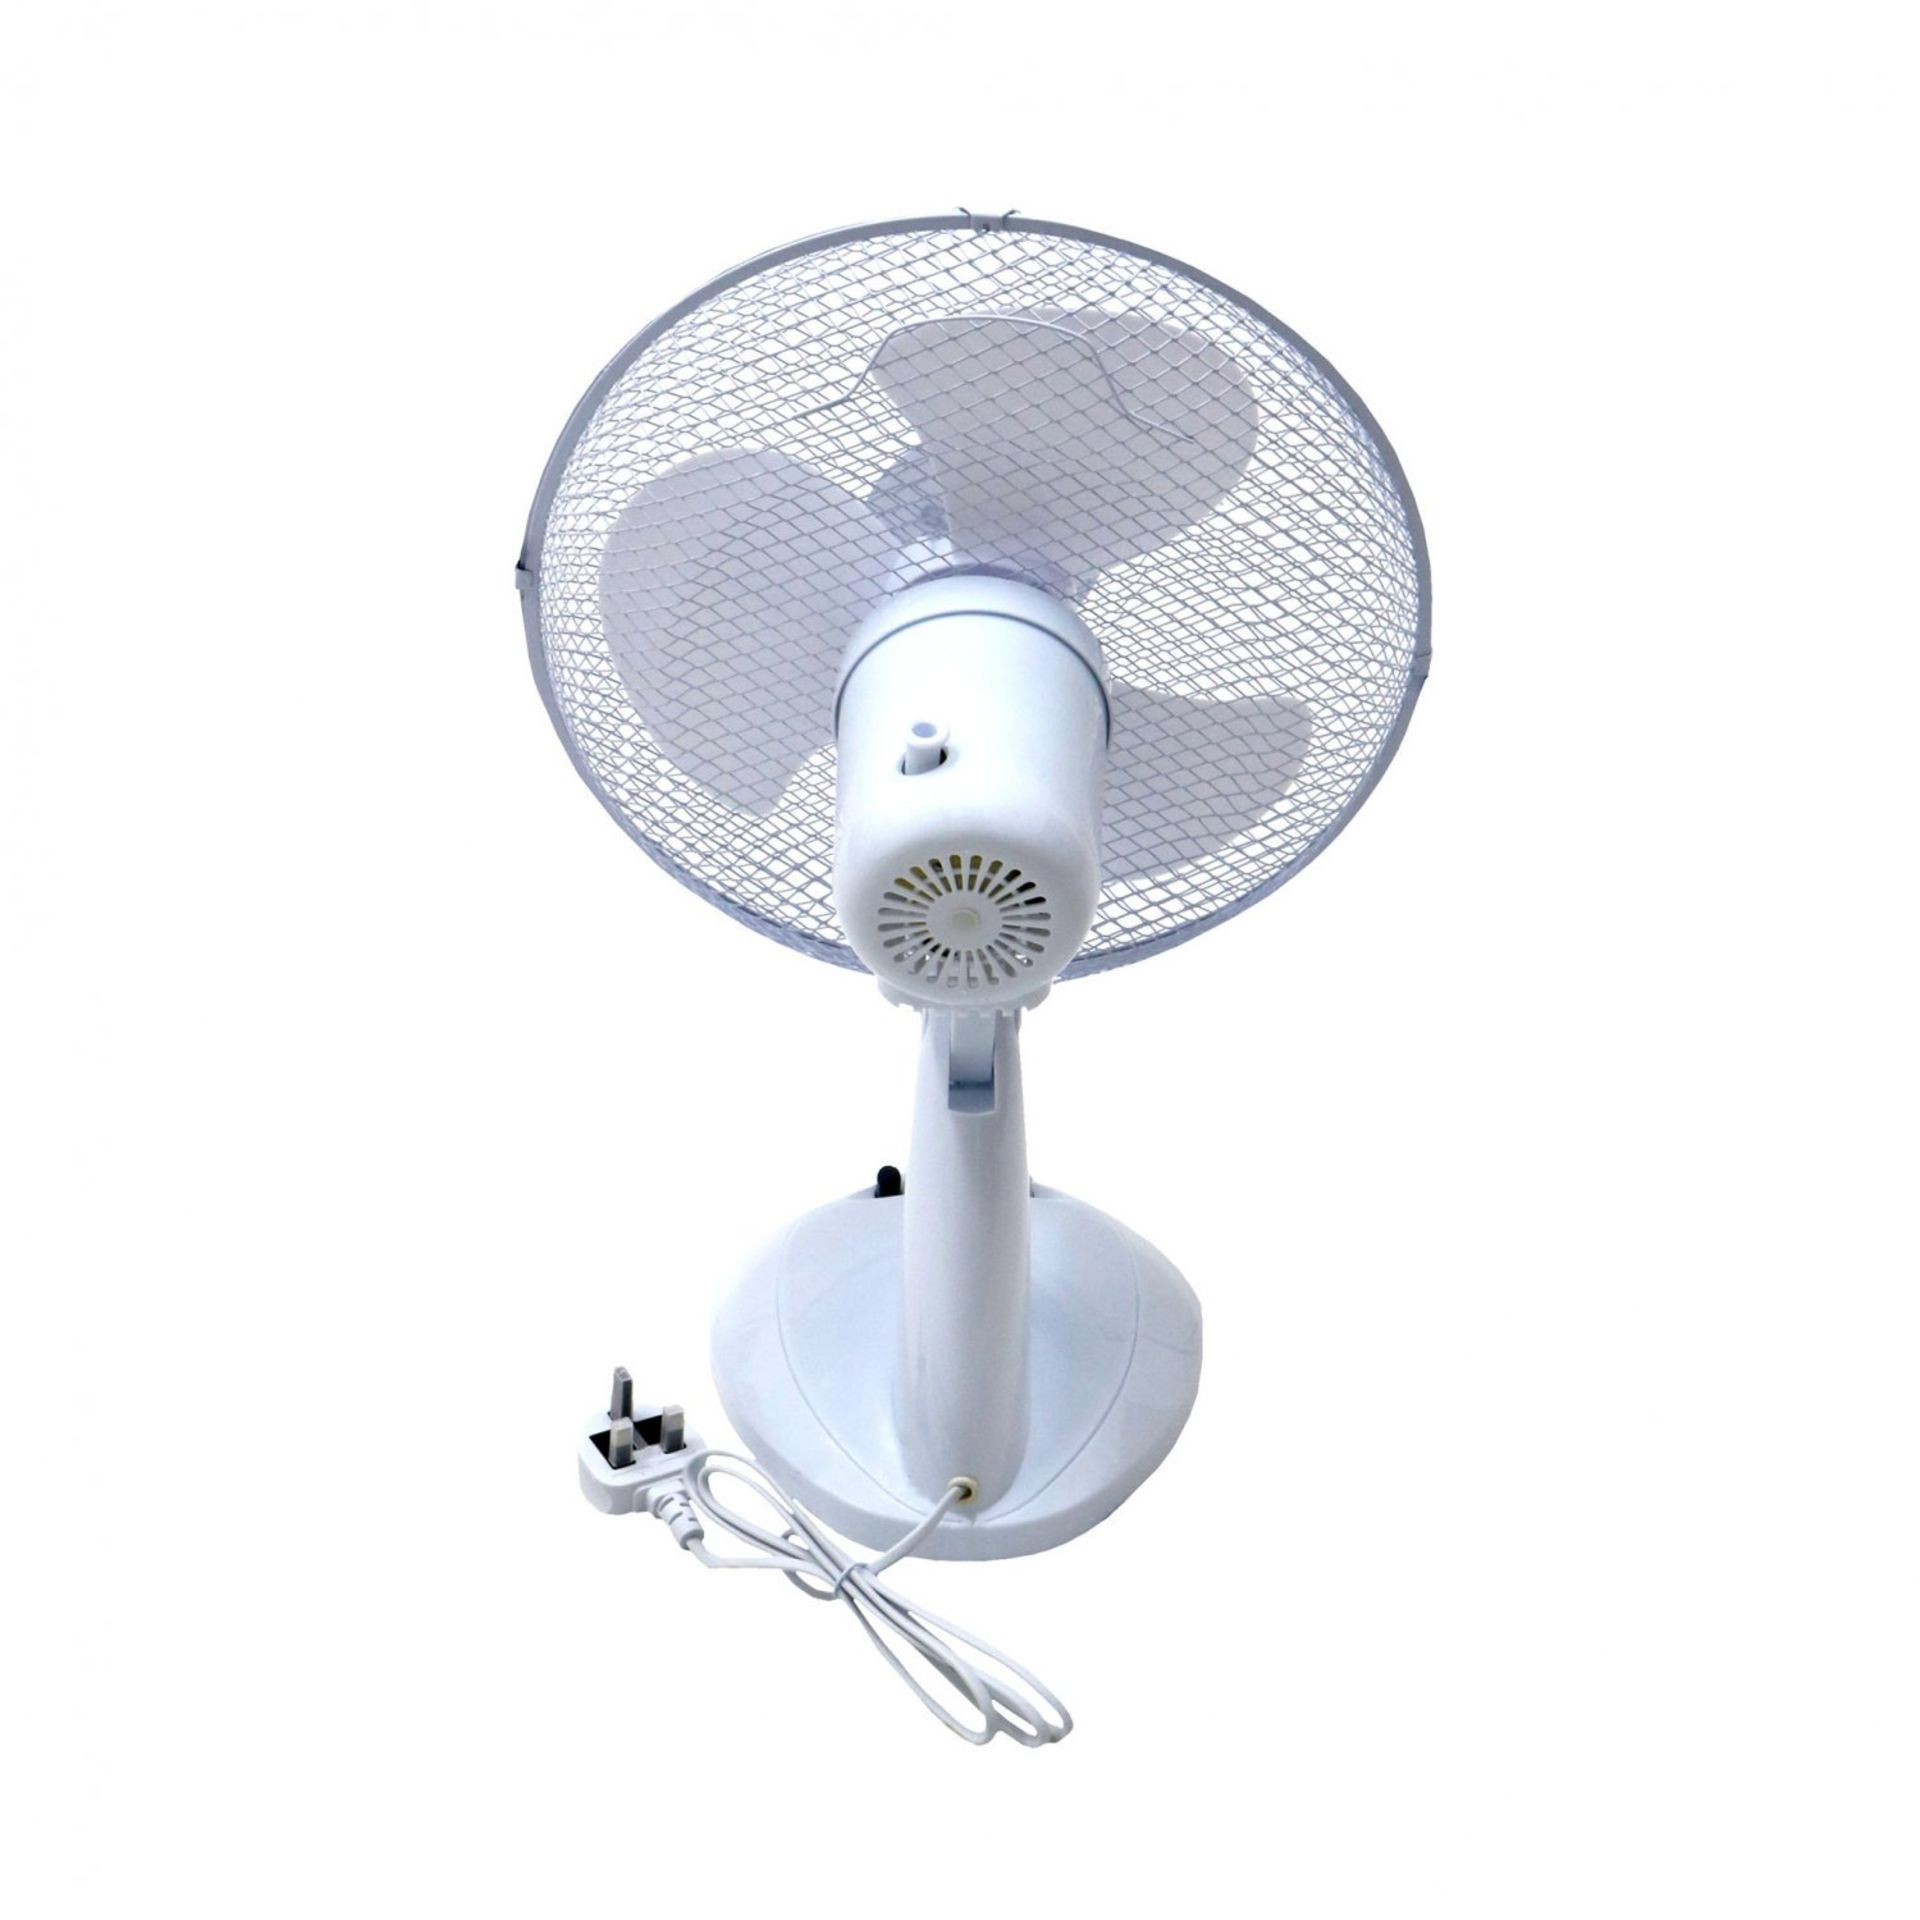 """Lot 33 - (RU24) 12"""" Oscillating White Desk Top Fan Stay cool this year with the 12"""" desk top fan..."""